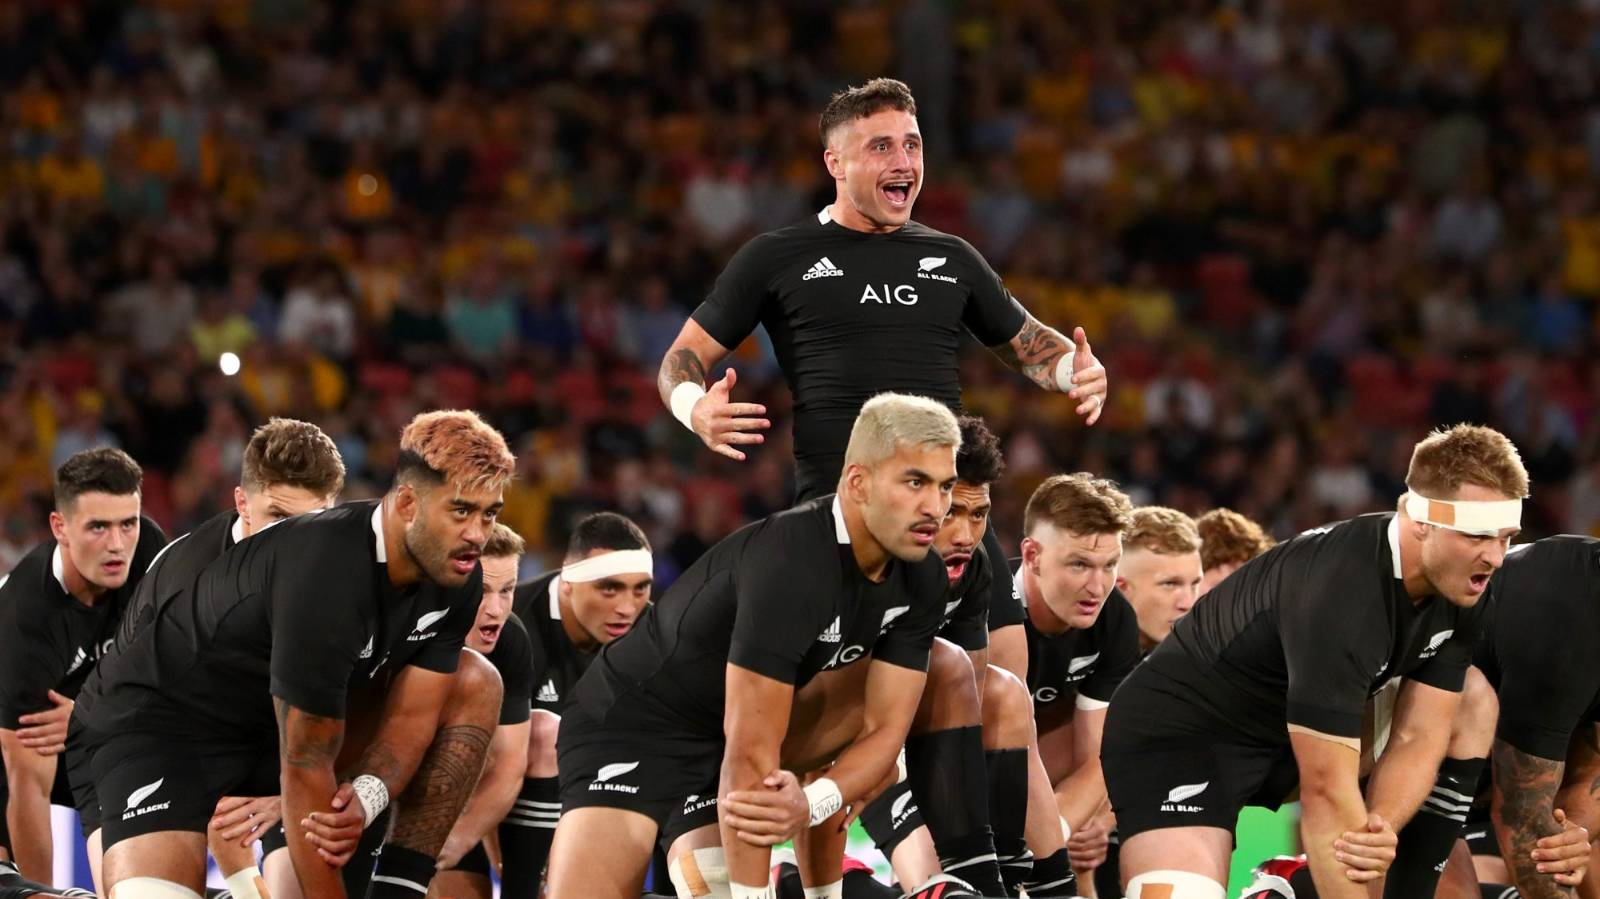 All Blacks great urges NZ Rugby not to re-sign TJ Perenara